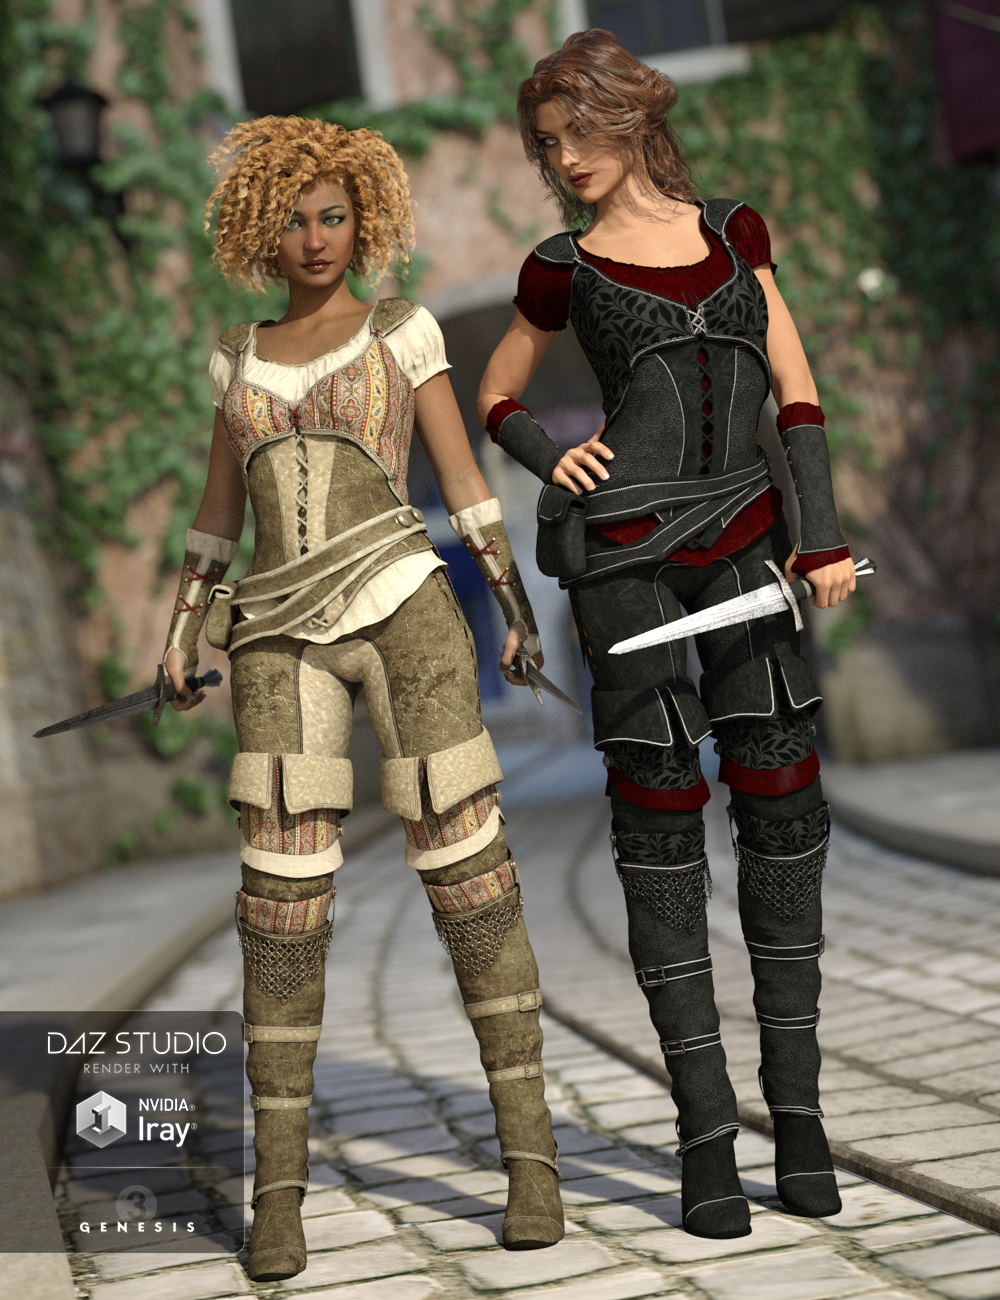 Shameless Rogue Outfit Textures by: Sarsa, 3D Models by Daz 3D